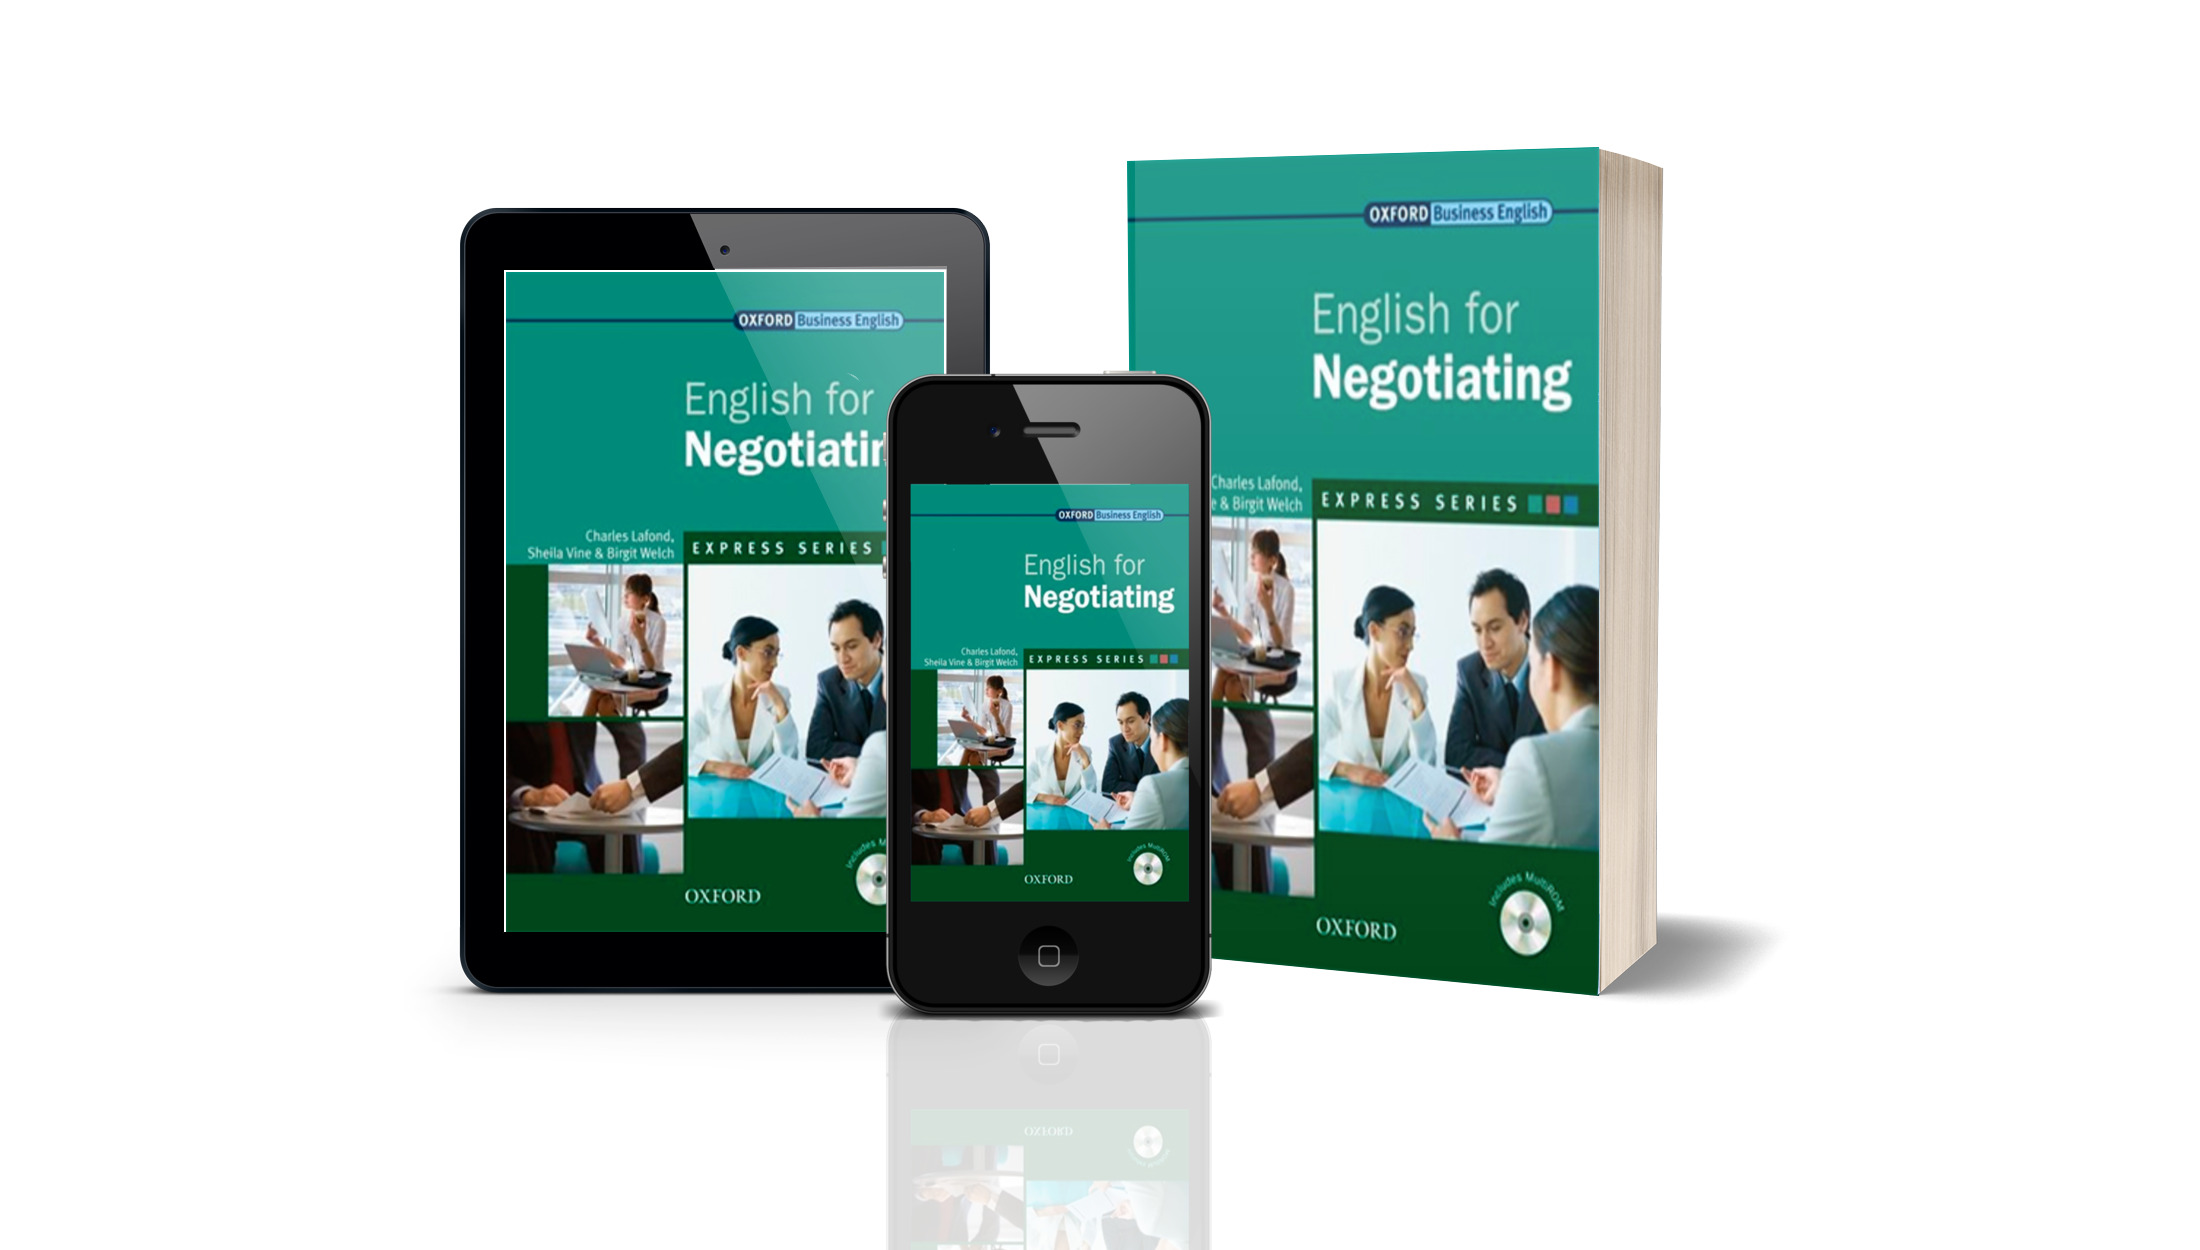 BOOK: ENGLISH FOR NEGOTIATING - OXFORD